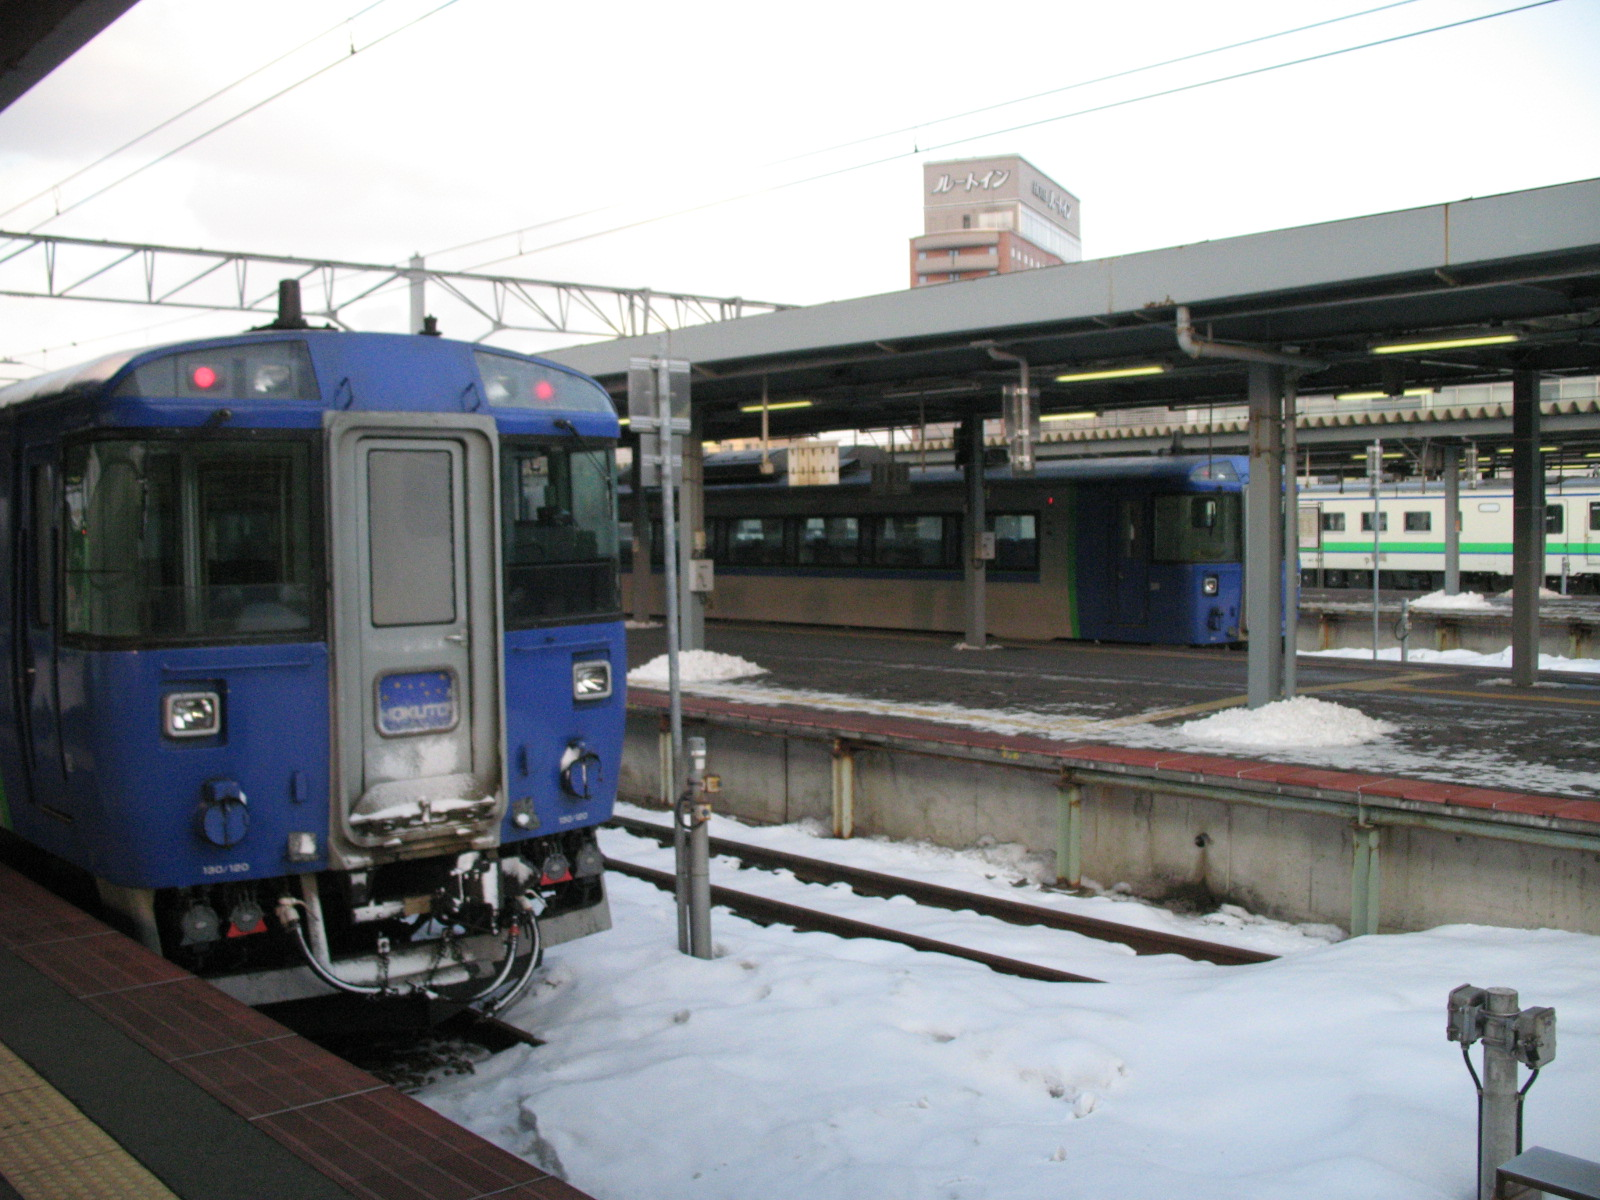 Hakodate station guide. How to change the train, Super Hakucho, Super Hokuto and other local trains.